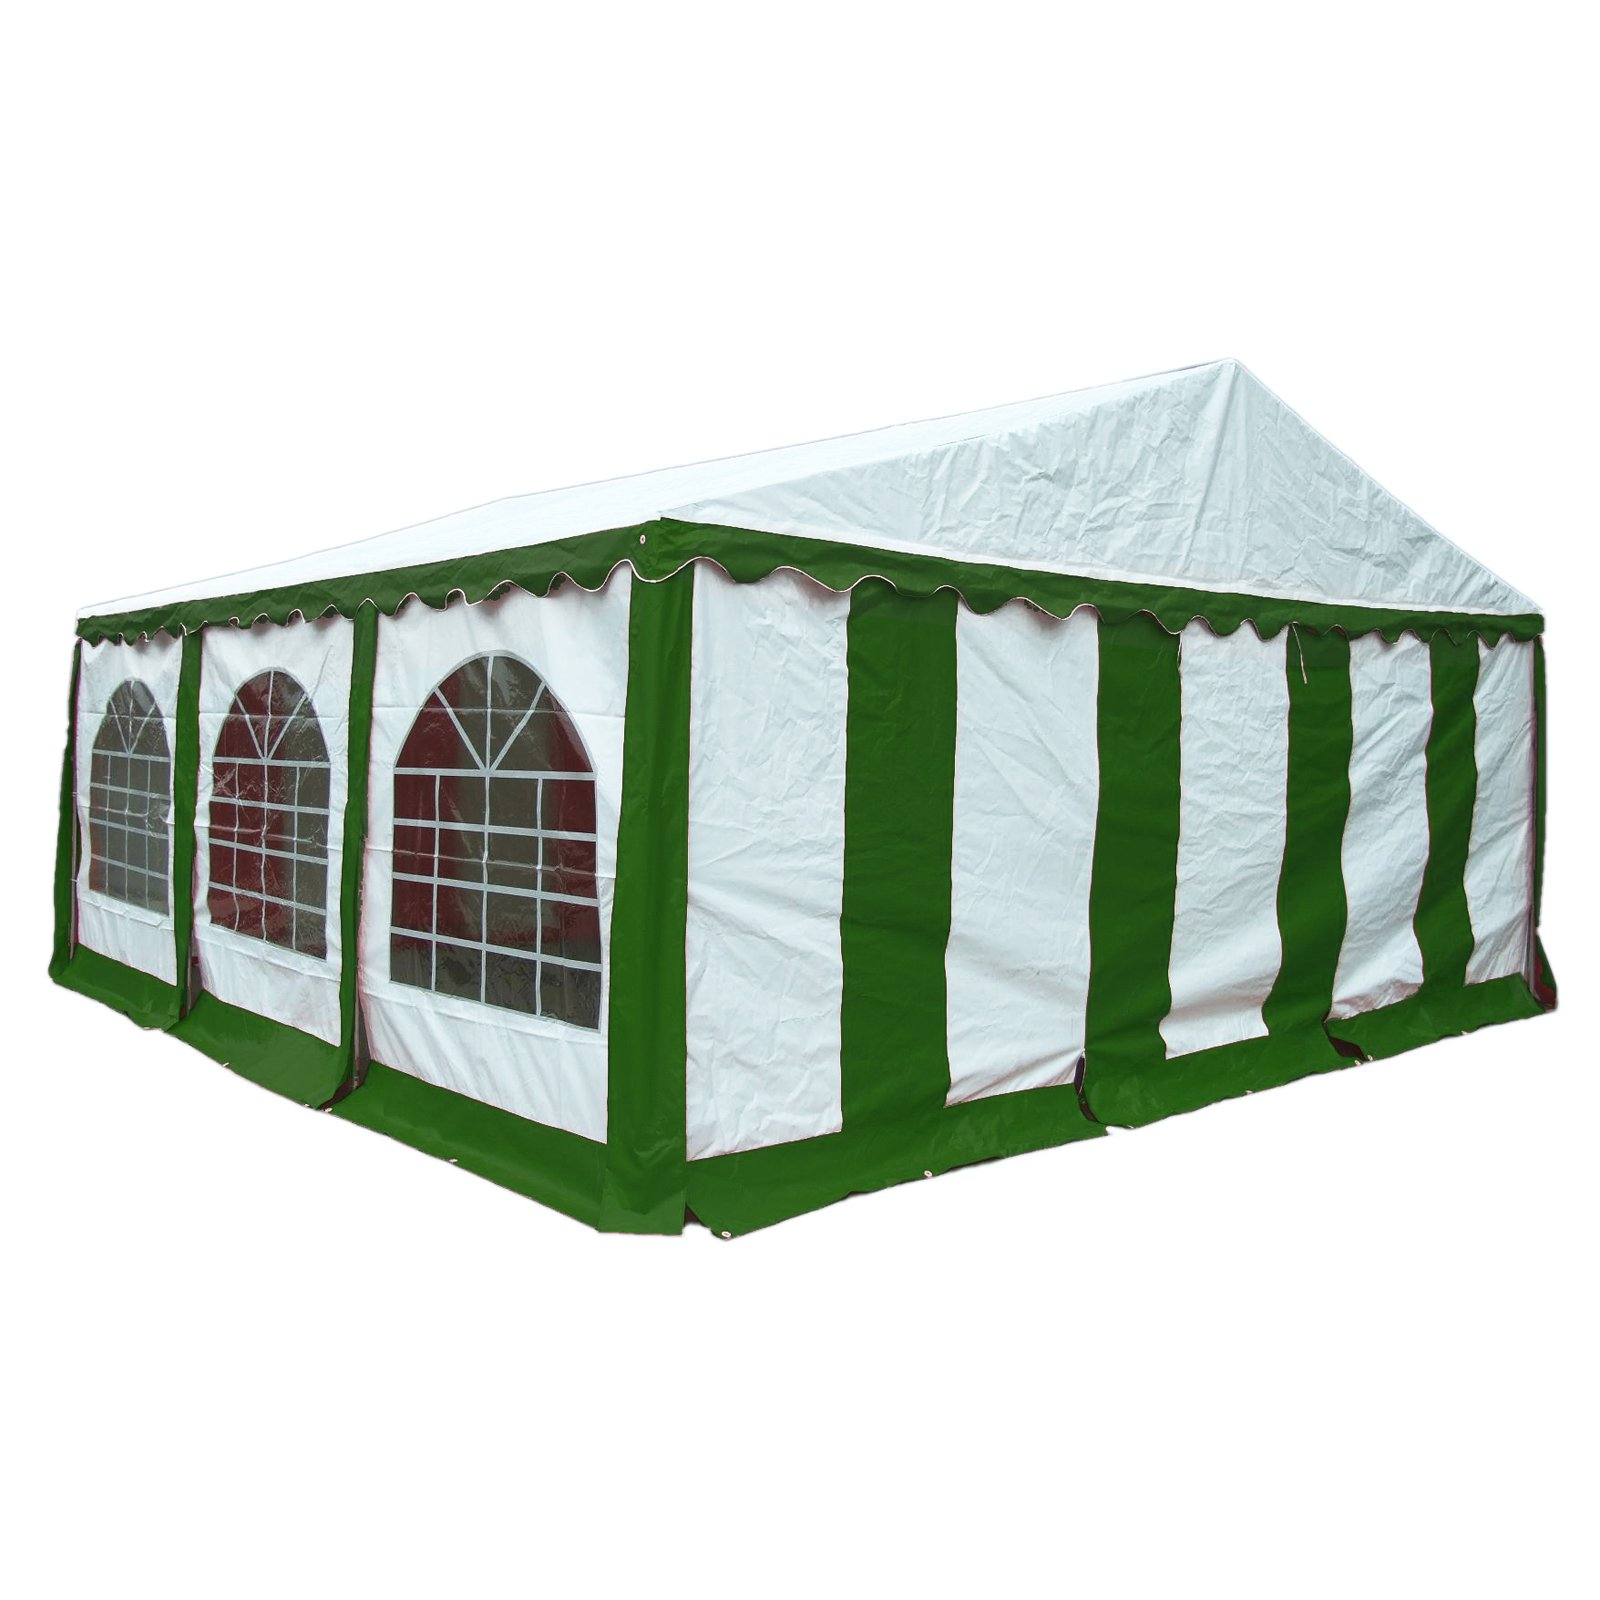 Enclosure Kit with Windows for Party Tent, 20' x 20'/6m x 6m, Green/White, (Frame and Cover Not Included)